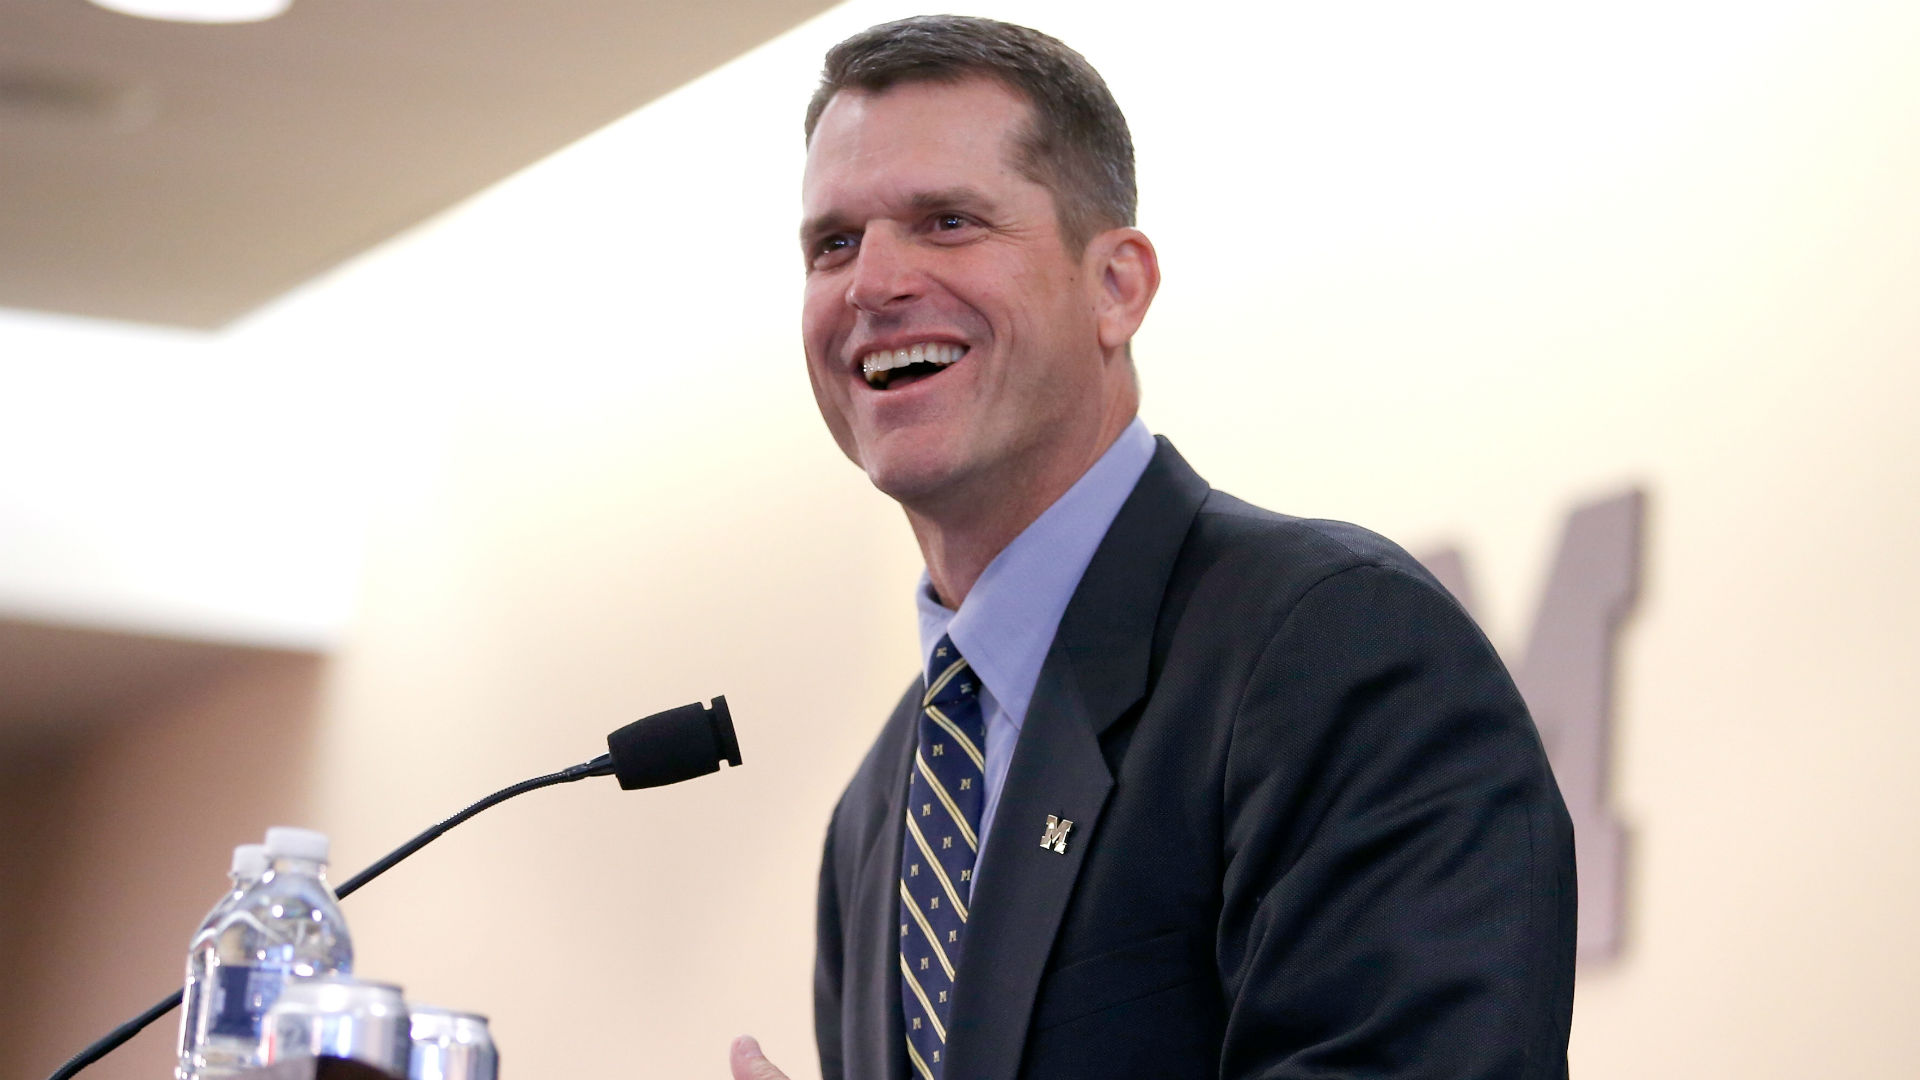 Jim Harbaugh finishes fourth in Michigan student government election